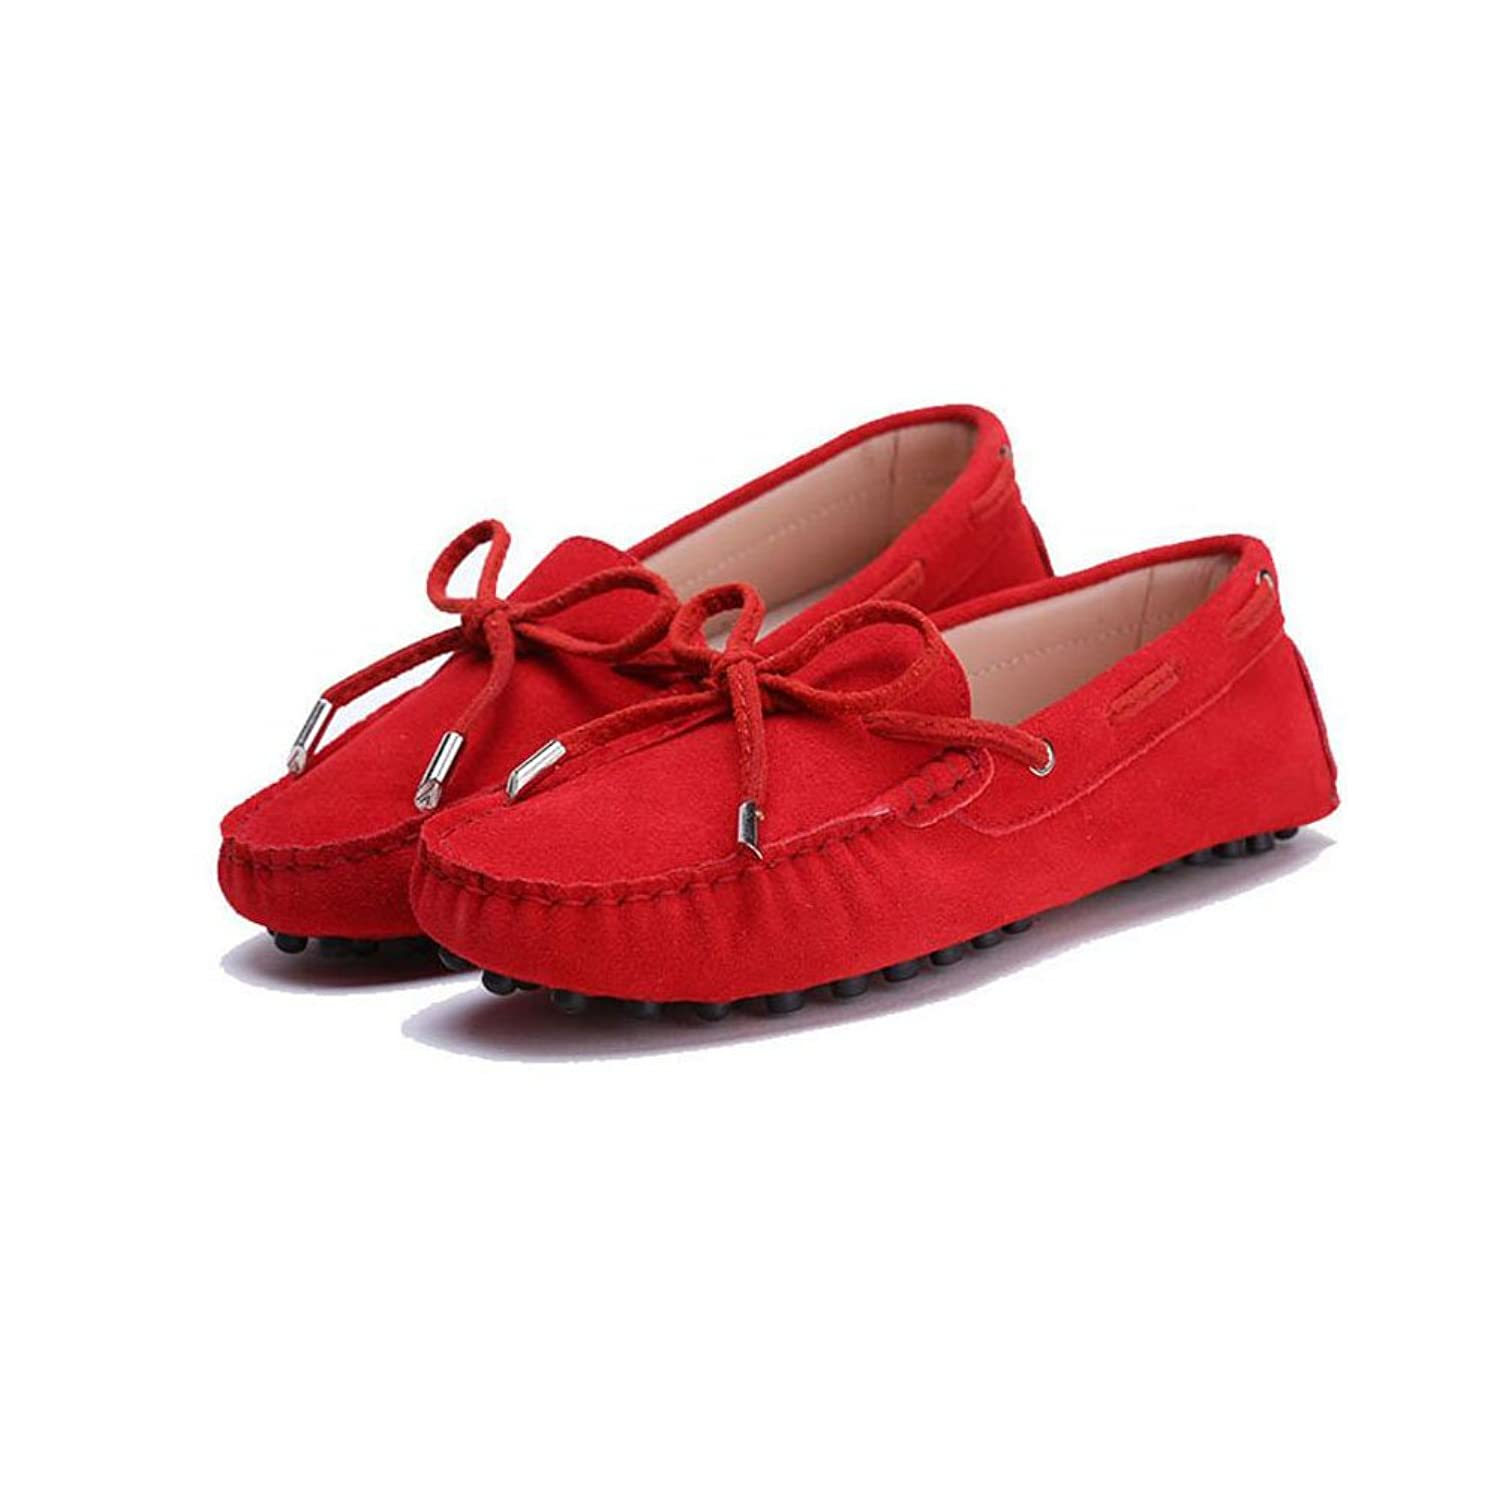 YITL Women's Suede Leather Driving Moccasins Slip-On Loafers Boat Shoes Flats